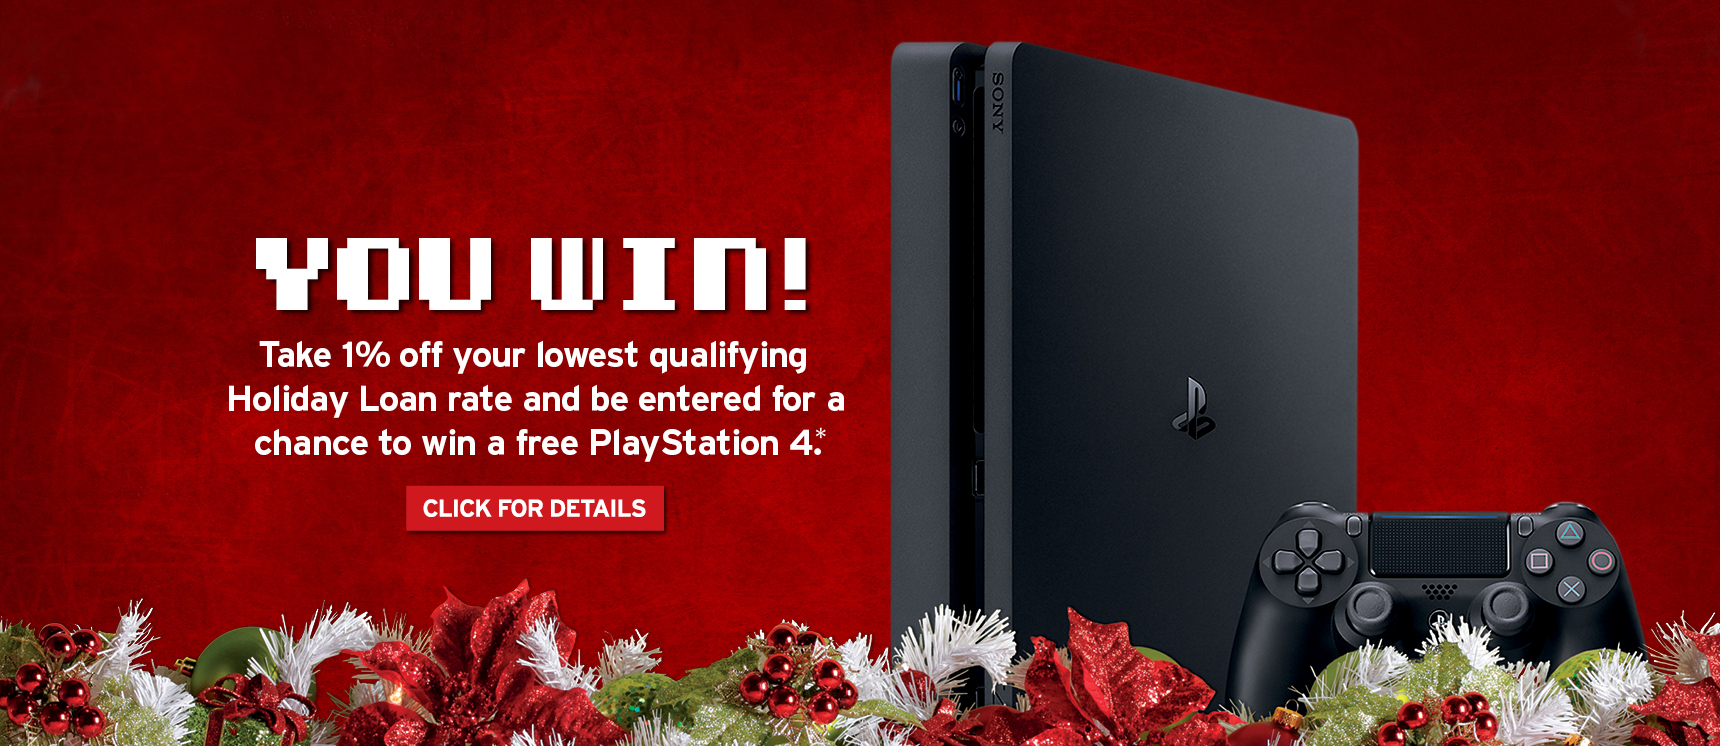 Banner image of PlayStation4 saying You Win with click for details button